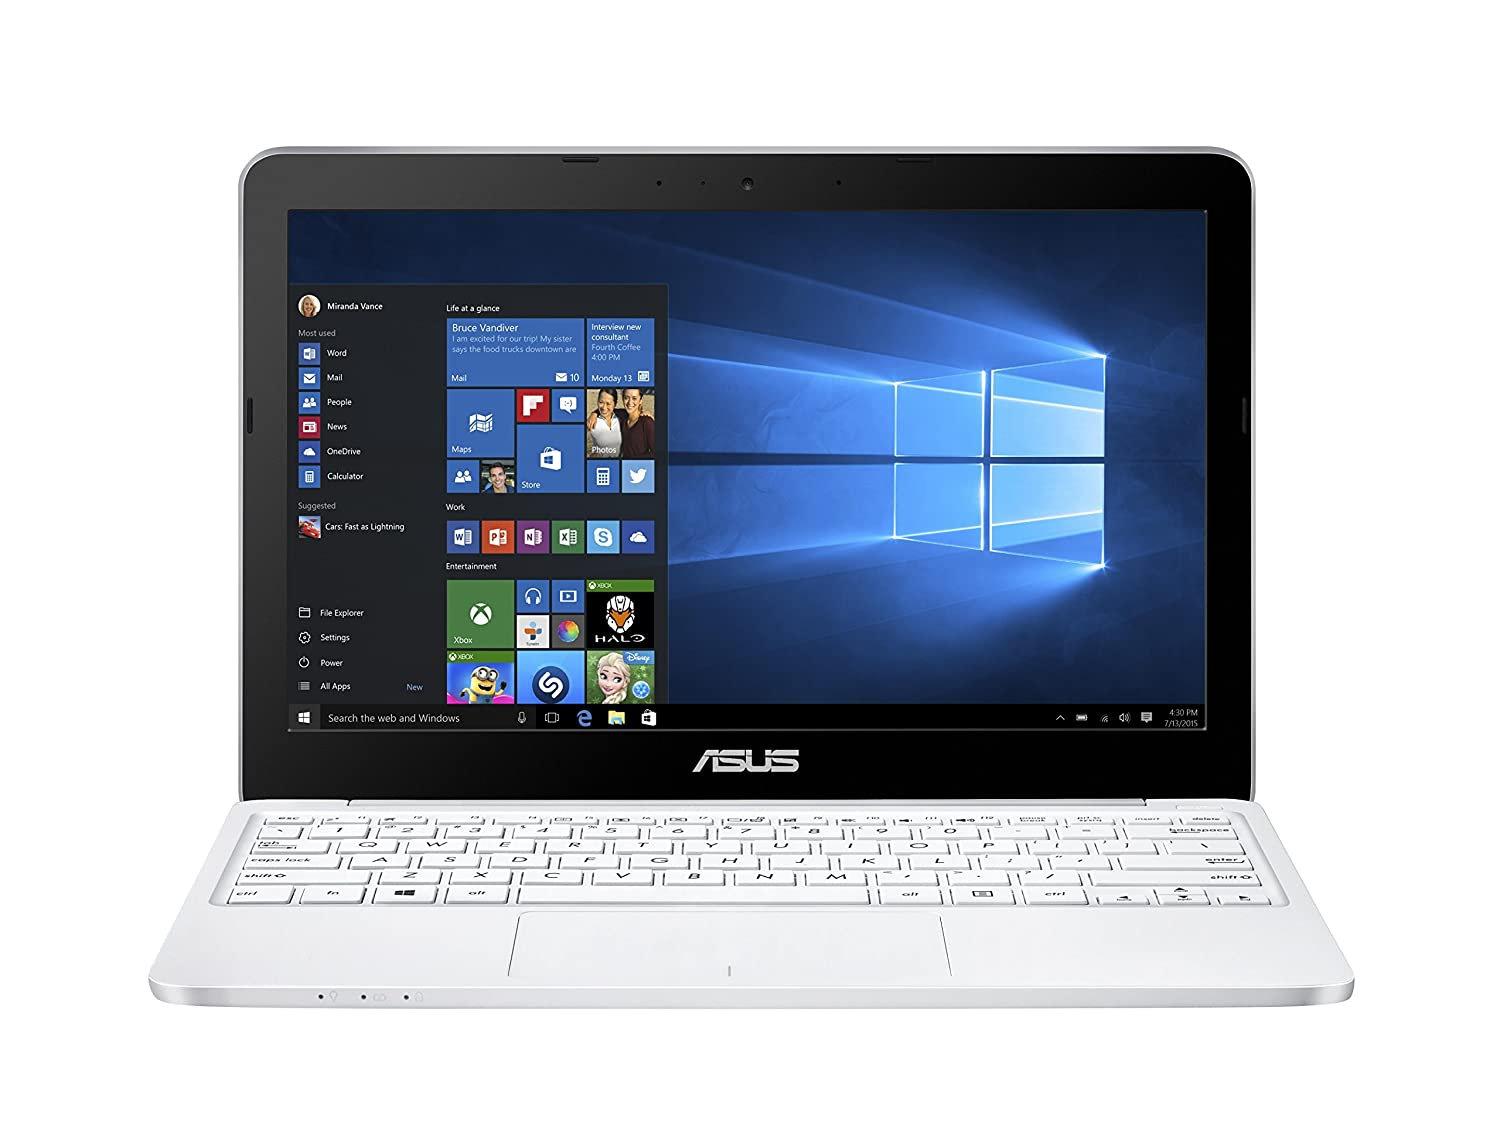 ASUS VivoBook E200H 11 6 inch HD LED Notebook with Microsoft Office 365  (Intel X5-Z8300, Integrated Graphics, 2 GB RAM, 32 GB SSD, Windows 10) -  White